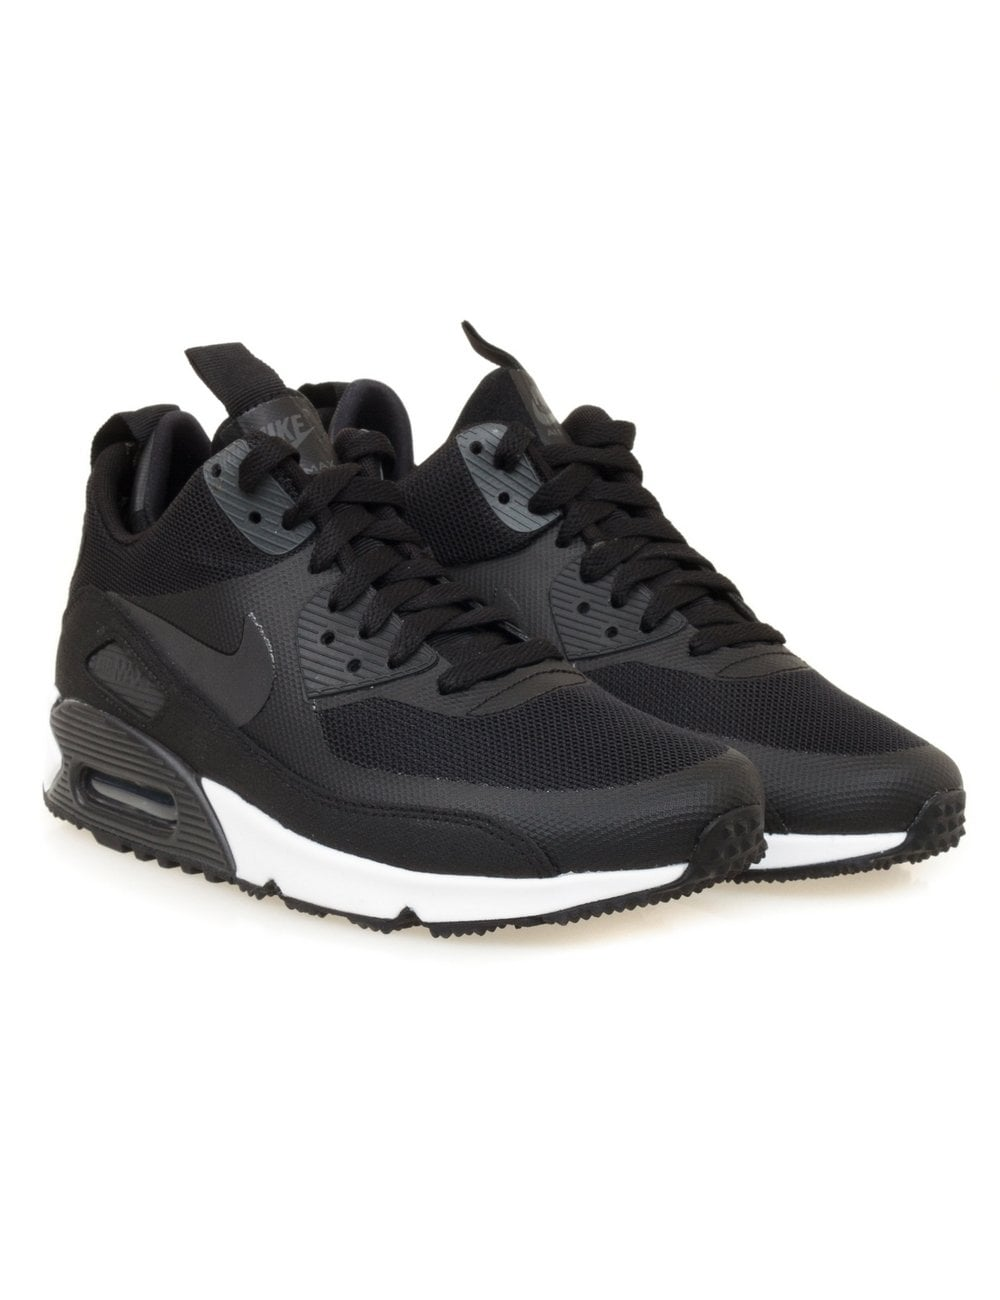 Air Max 90 Sneakerboot NS - Black/Dark Charcoal